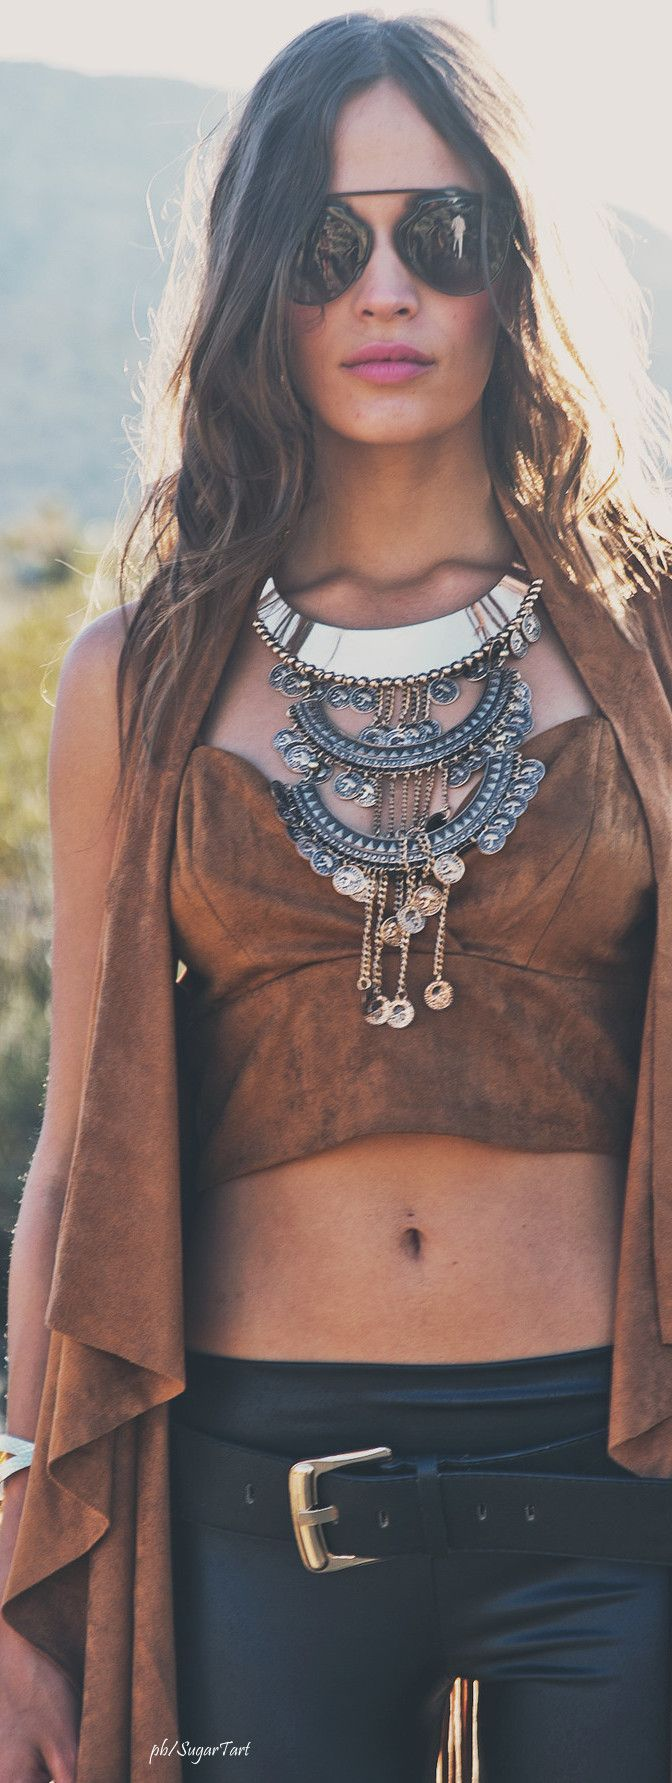 1669 Best Images About Best Of Bohemian Fashion On Pinterest Boho Style Hippie Chic And